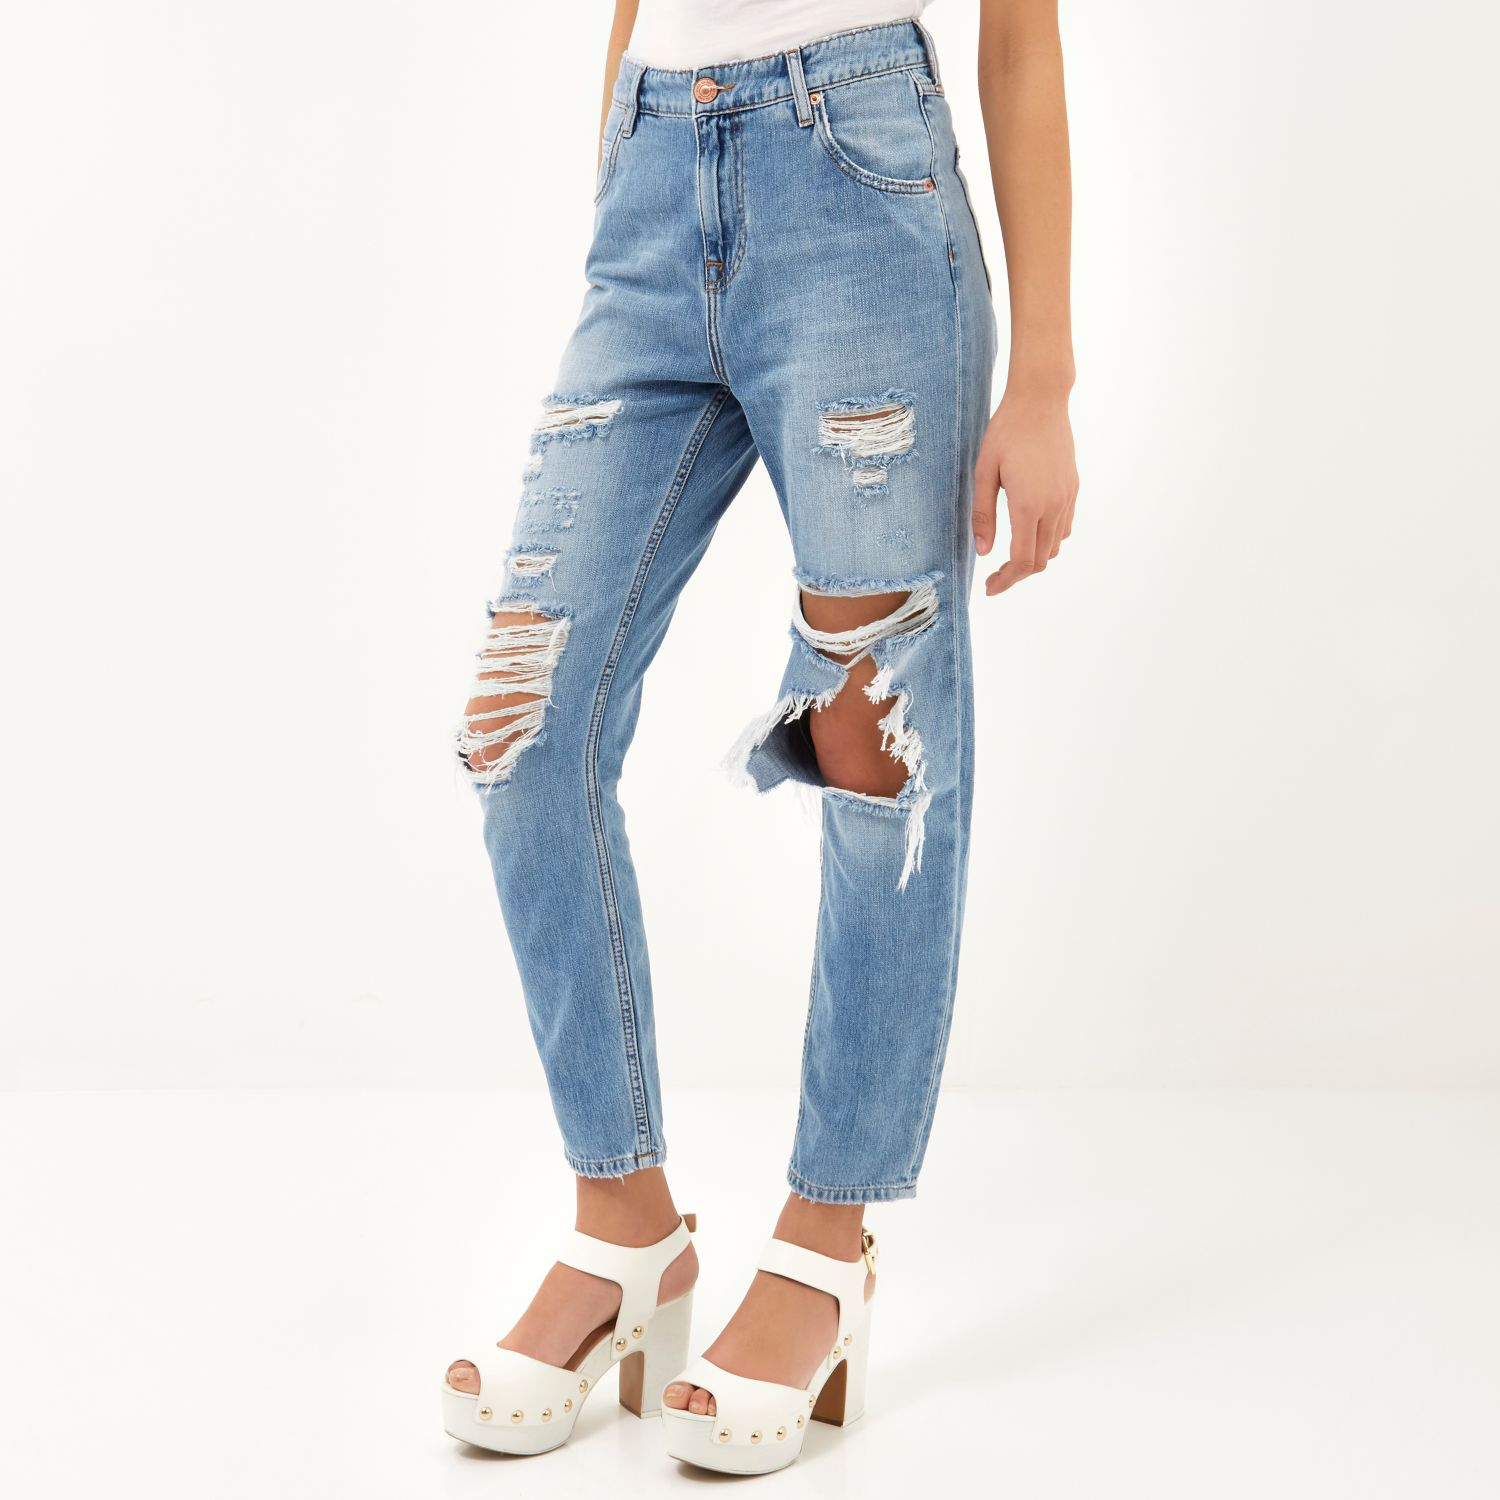 c6050319f6 River Island Mid Wash Ripped Slim Mom Jeans in Blue - Lyst